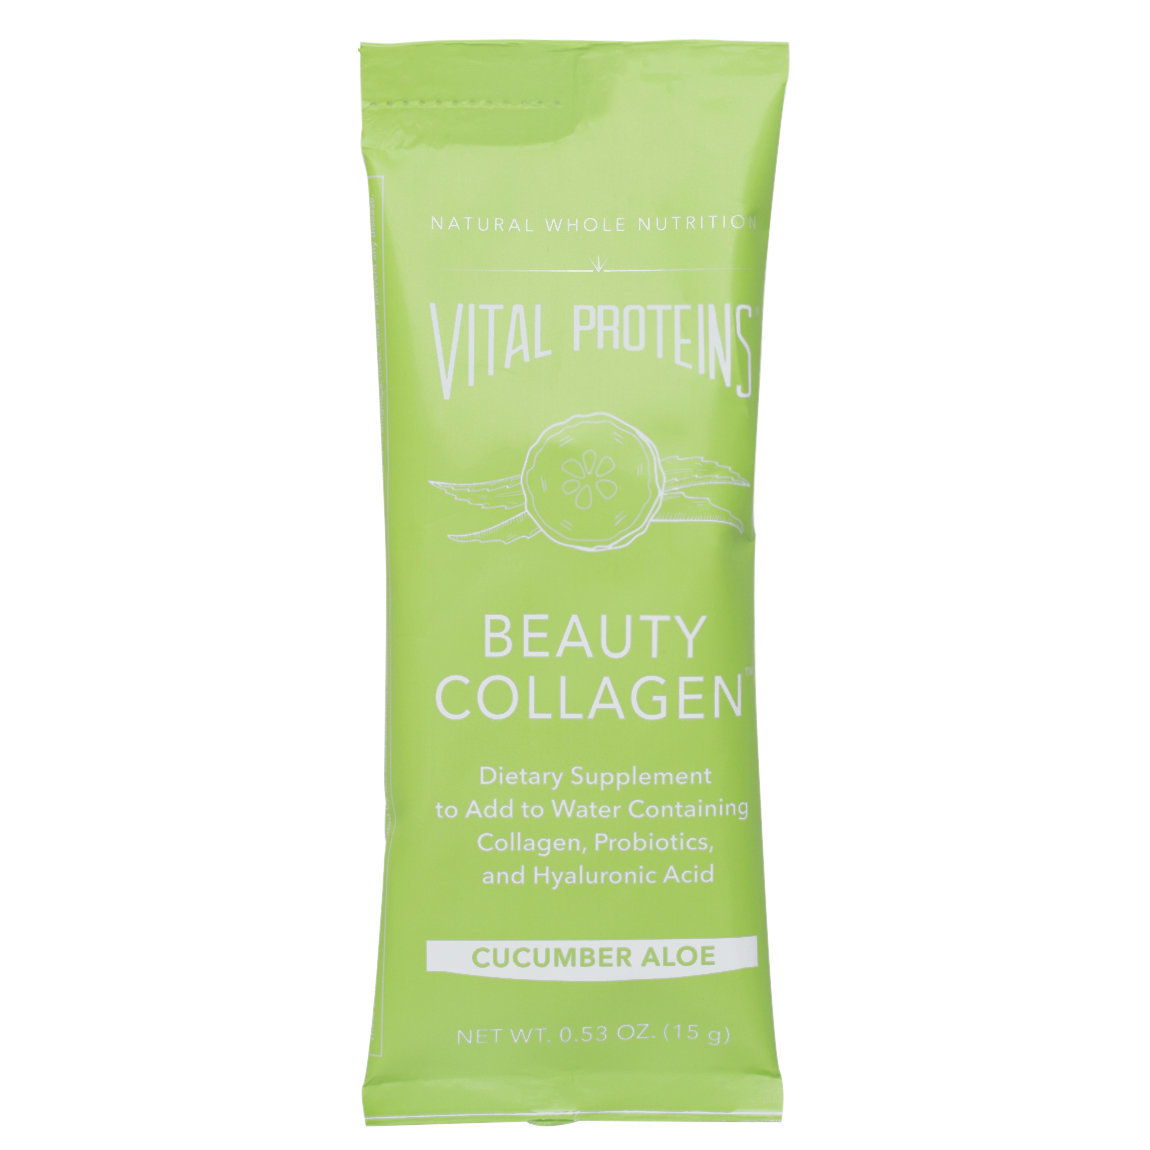 Vital Proteins Beauty Collagen - Cucumber Aloe Stick Packs product swatch.